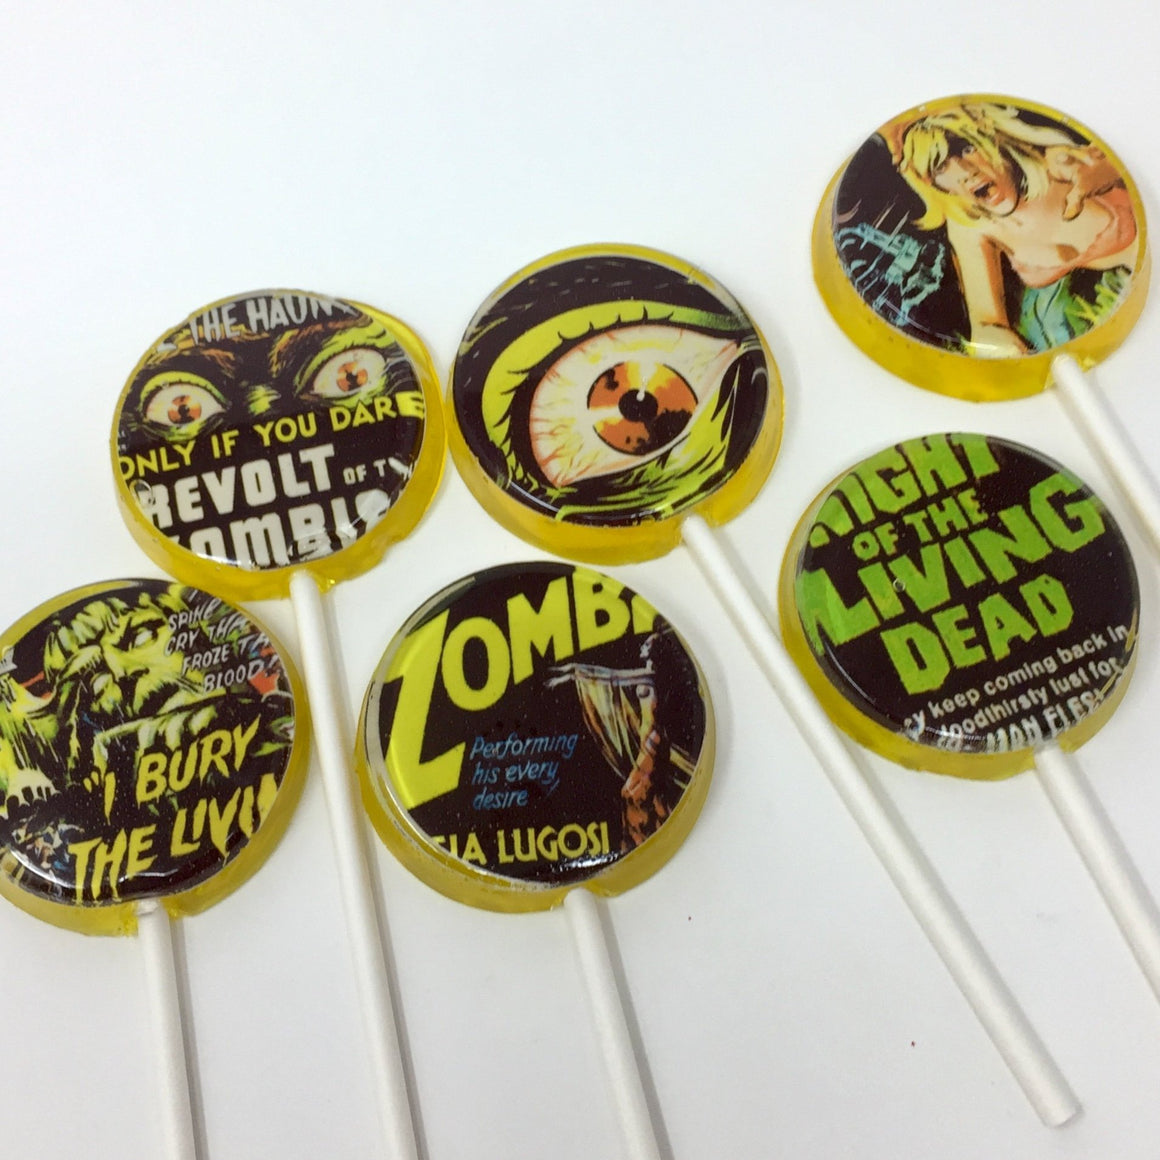 Zombie apocalypse flat style edible image lollipops by I Want Candy!